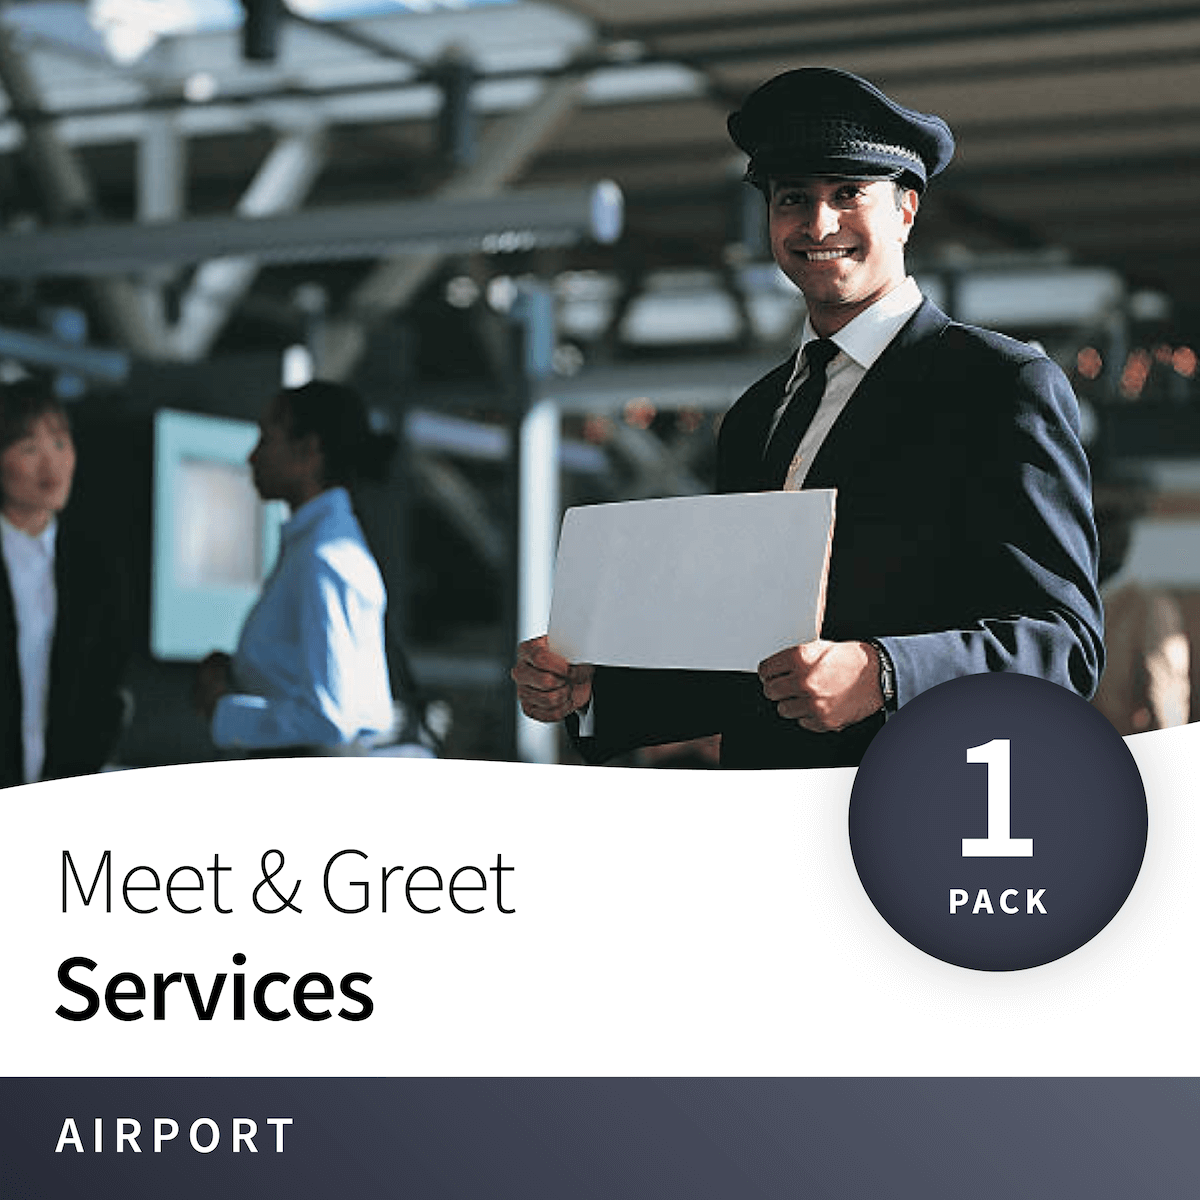 Meet & Greet Services 8